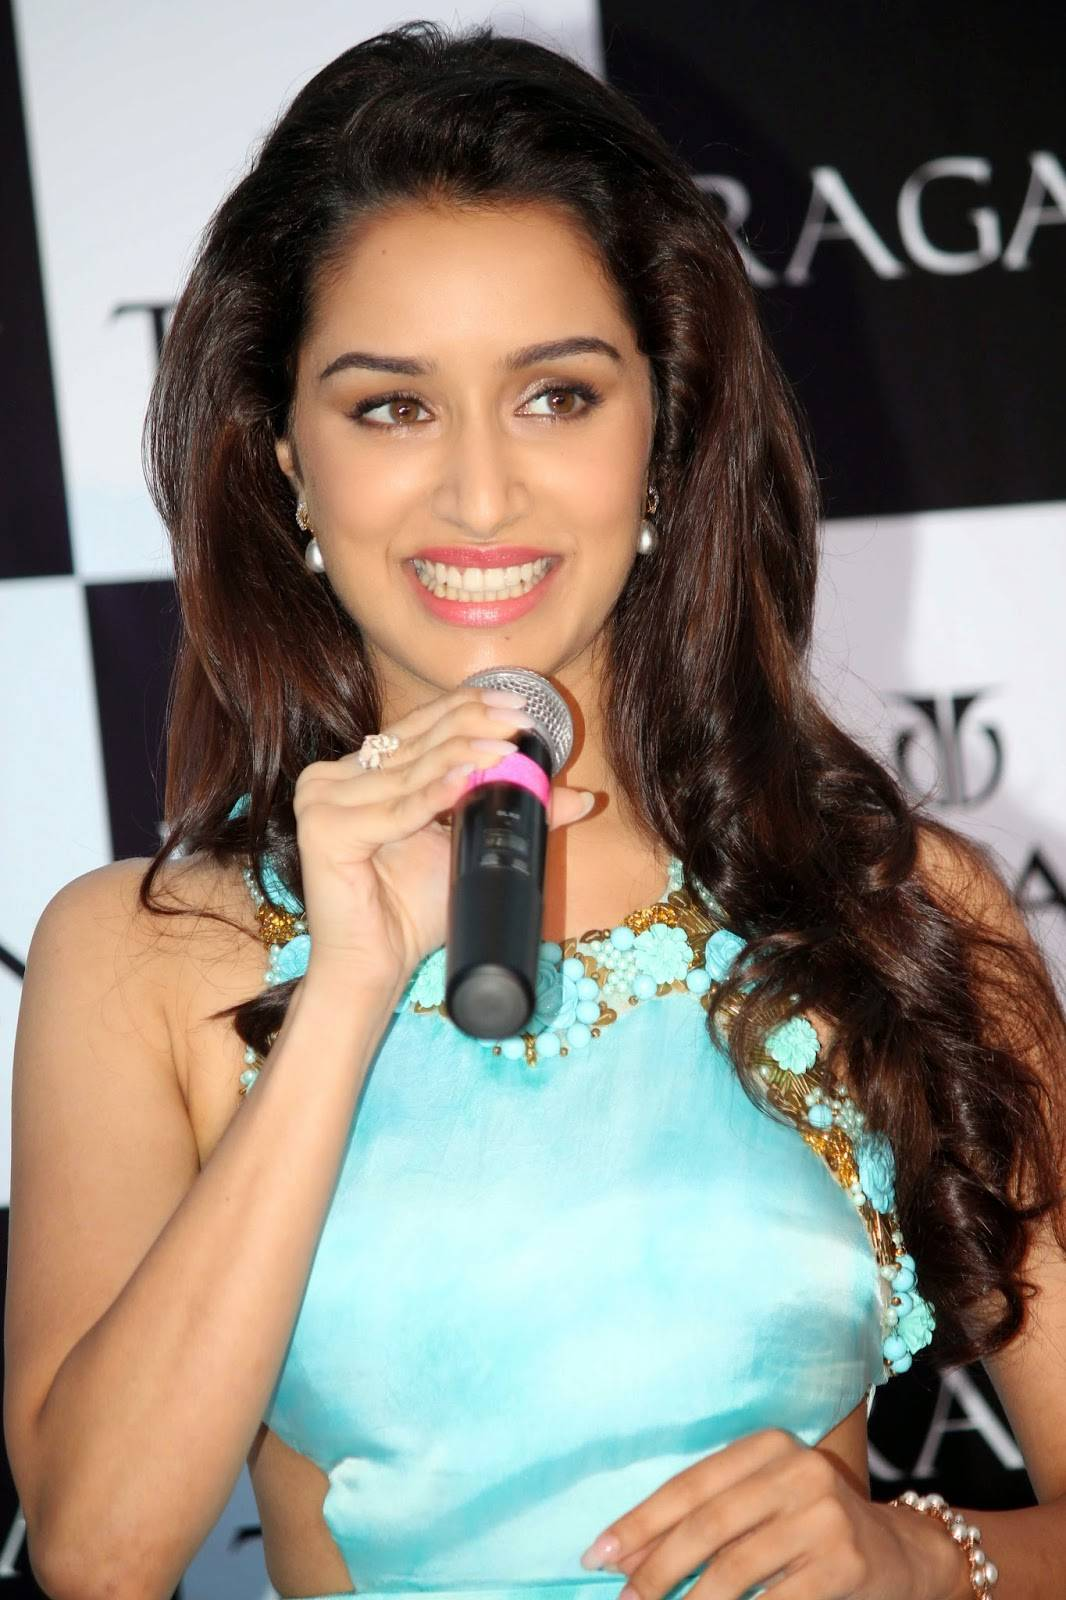 shraddha kapoor images ♥ ♥ ♥ gorgeous hd wallpaper and background